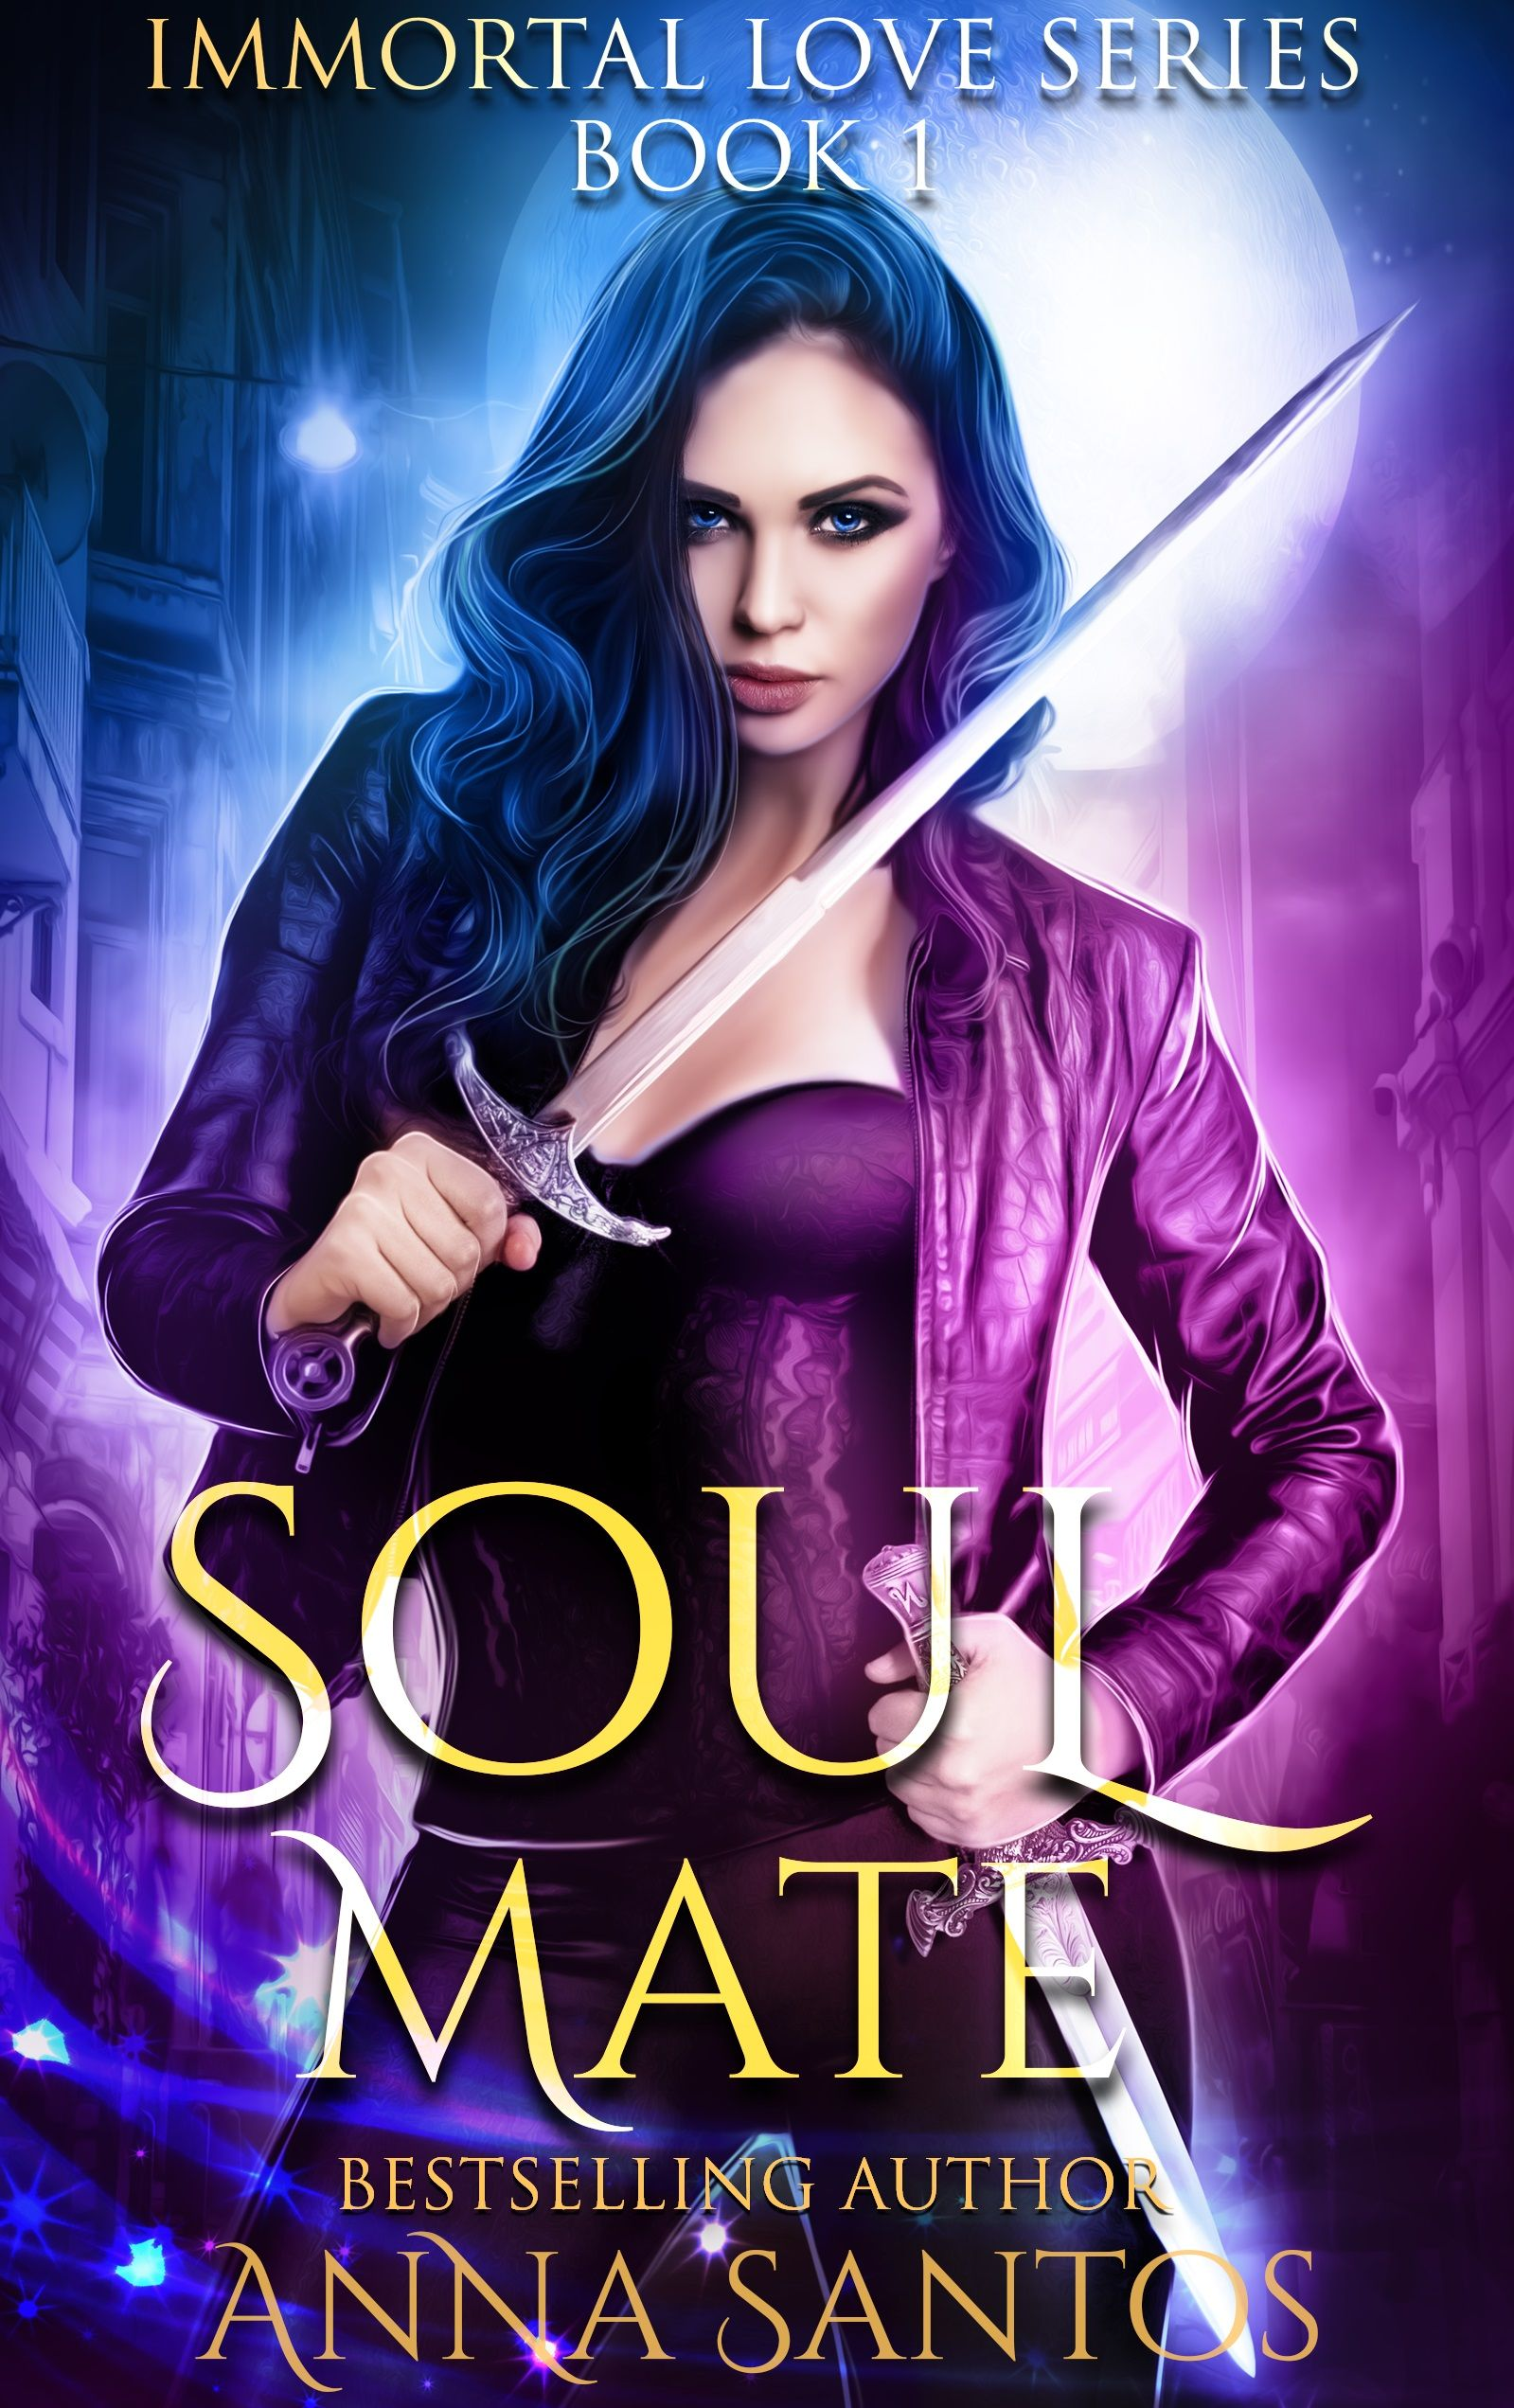 Soul mate by anna santos spellbinding paranormal romance free soul mate the immortal love series book 1 by anna santos genre paranormal romance urban fantasy annabel is a bad ass hybrid hunter seeking revenge fandeluxe Image collections